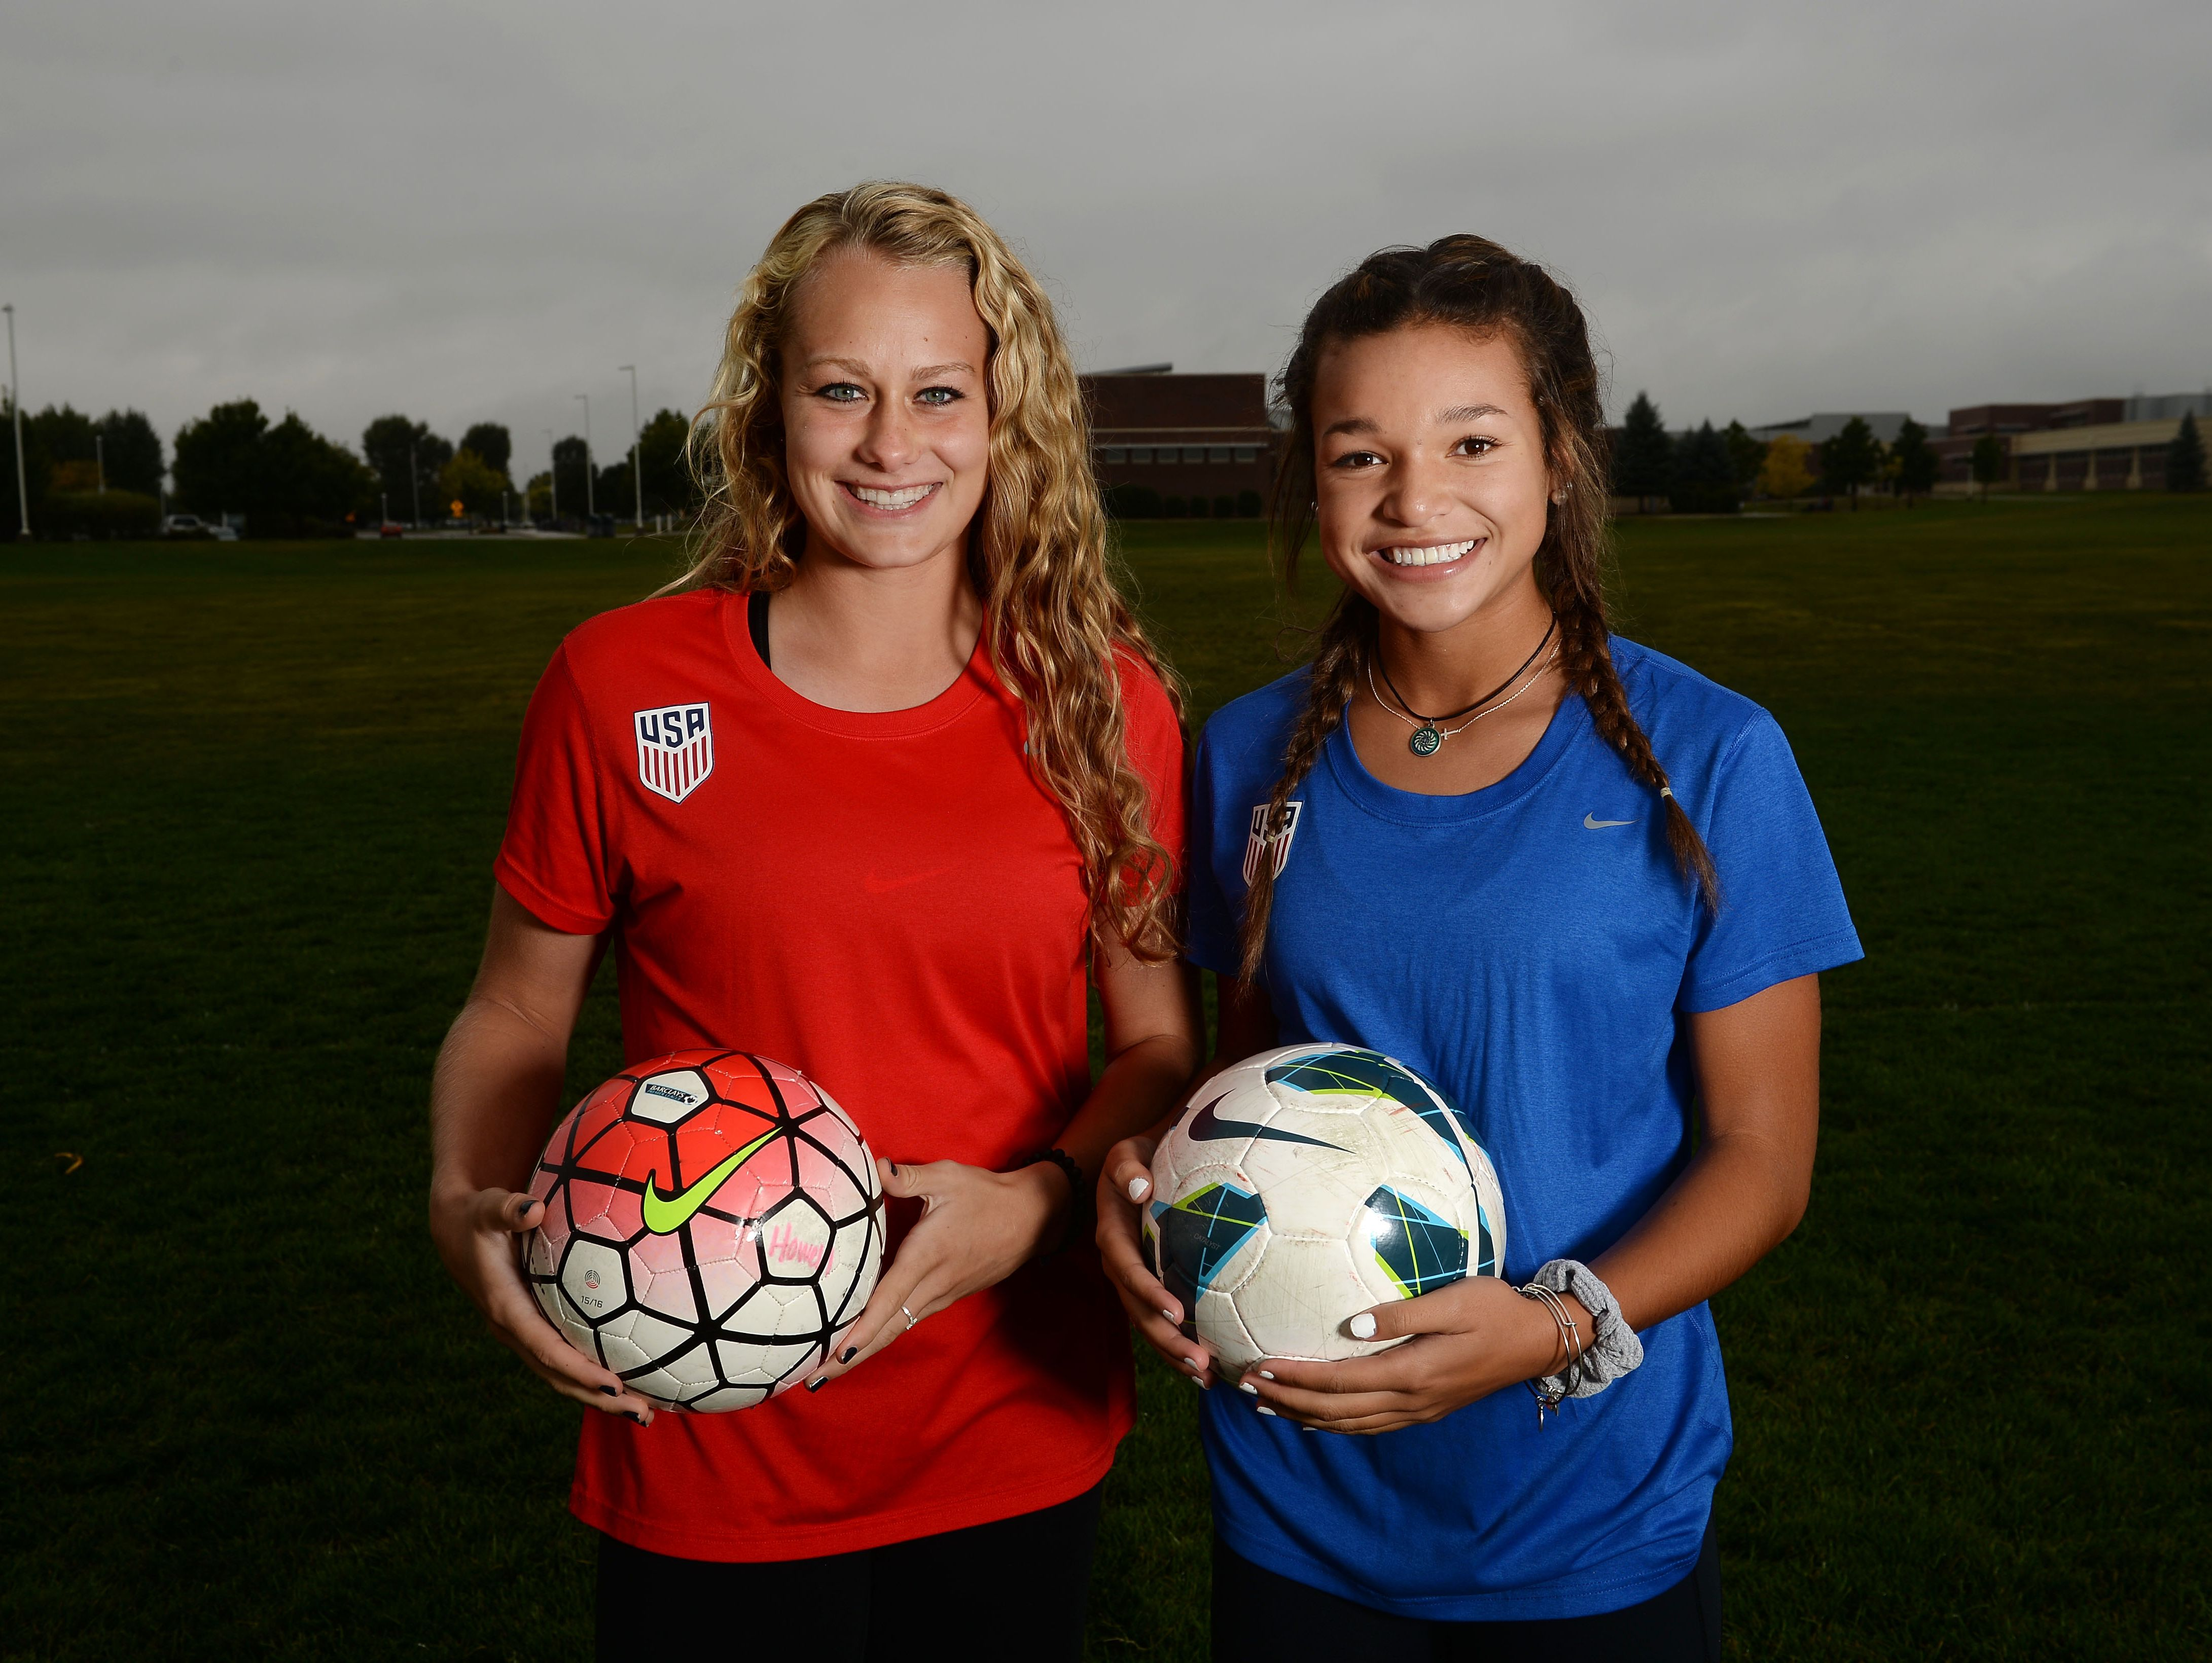 Fossil Ridge's Jaelin Howell, left, and Sophia Smith will represent the U.S. in the Under-17 Women's World Cup. They have been chosen as two of the best 21 players in the nation at their age.